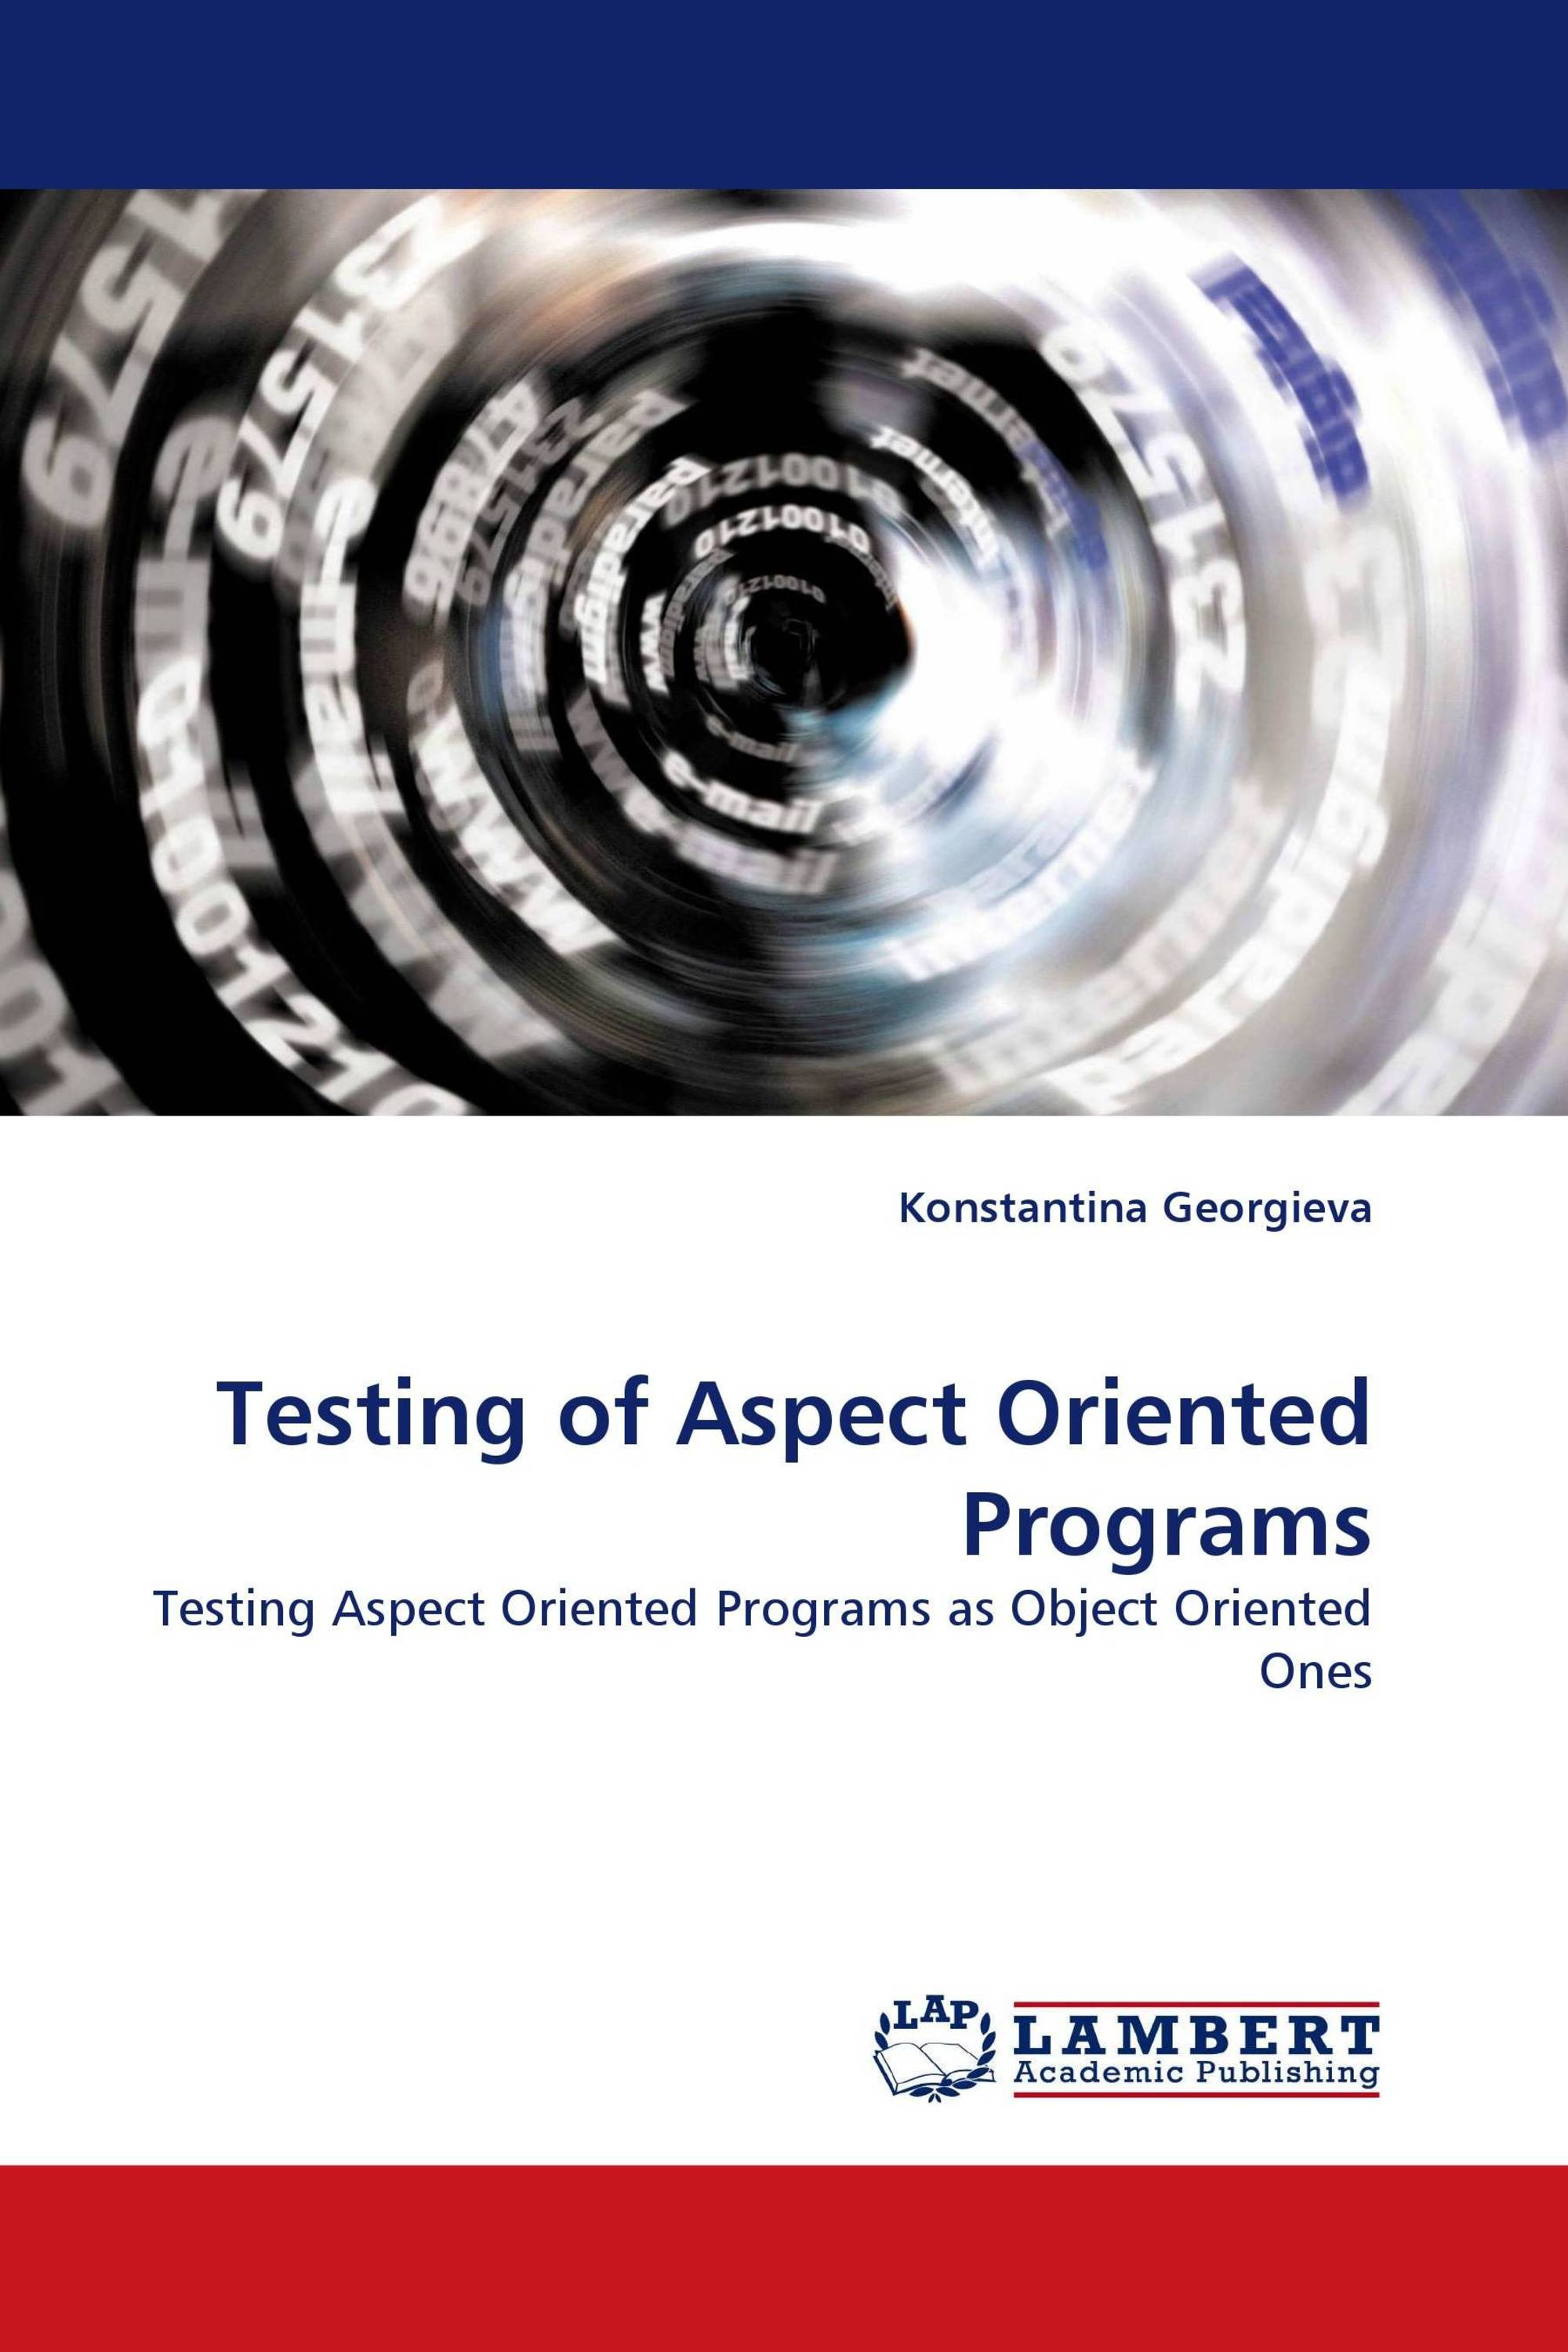 Testing of Aspect Oriented Programs